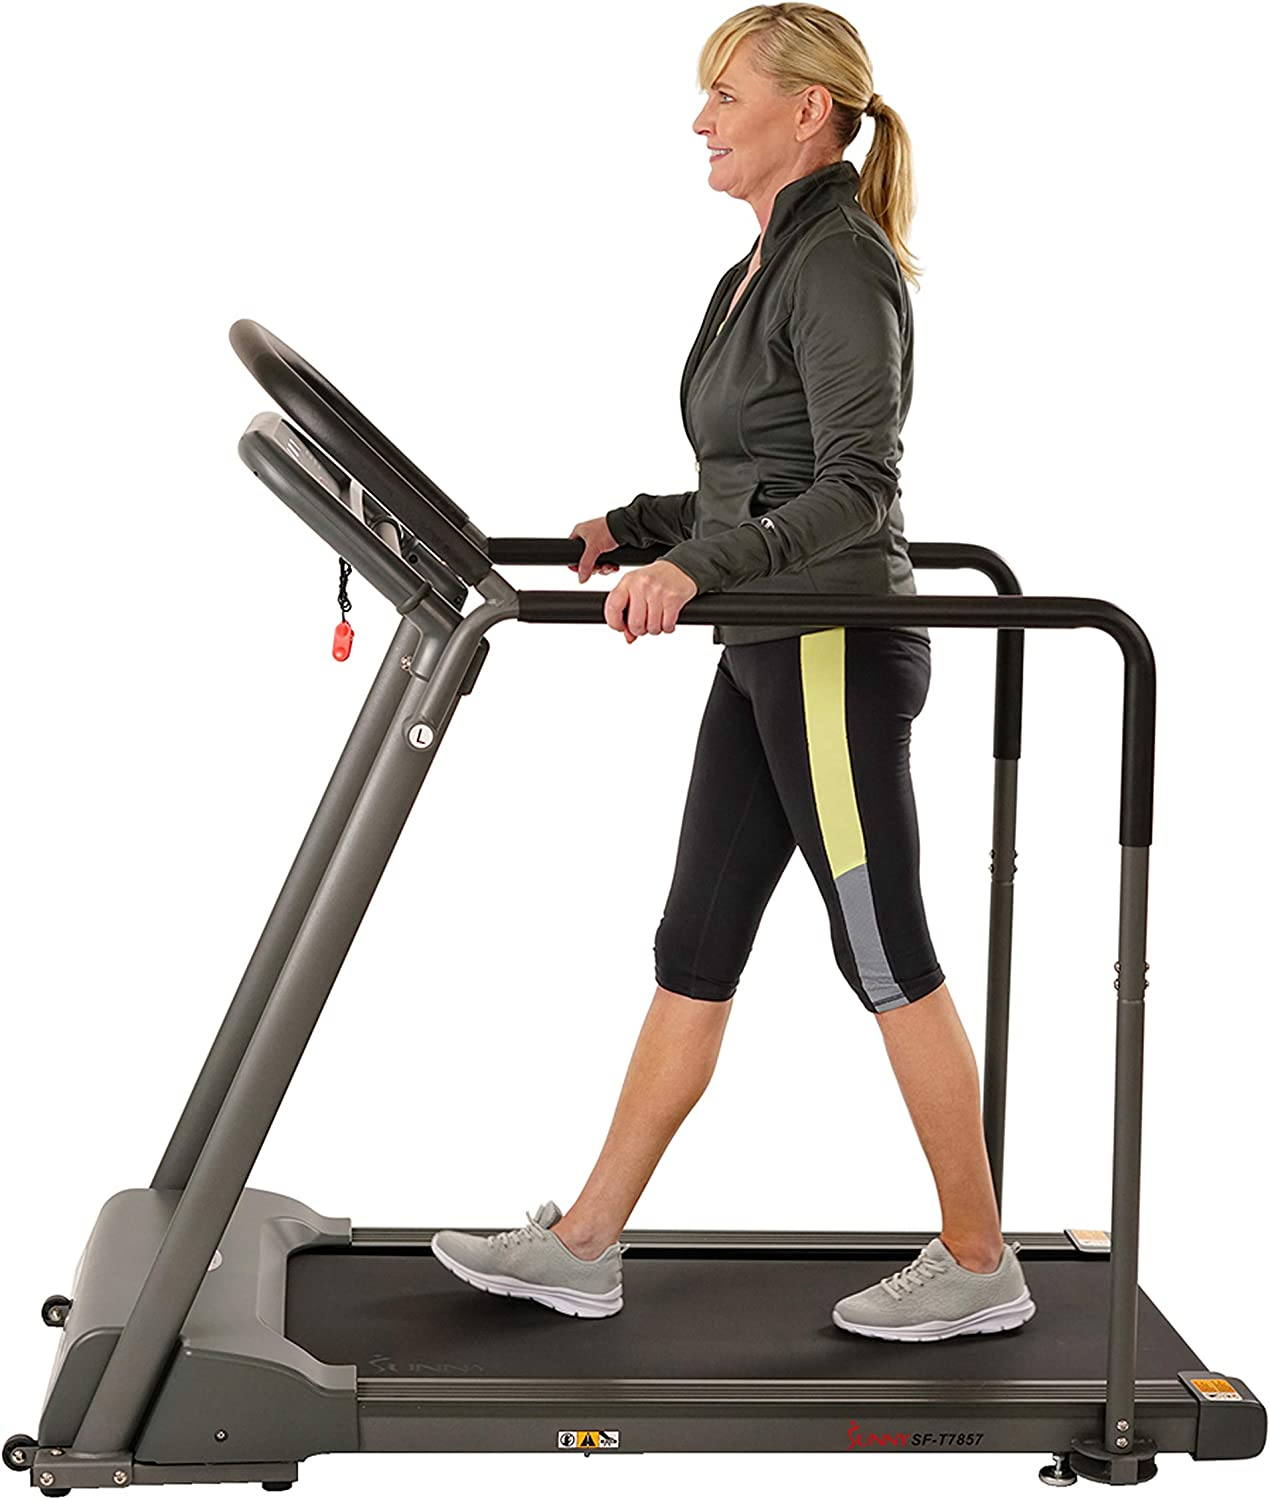 Sunny Health 5% OFF Fitness Walking Treadmill Deck trend rank with Wide Low and